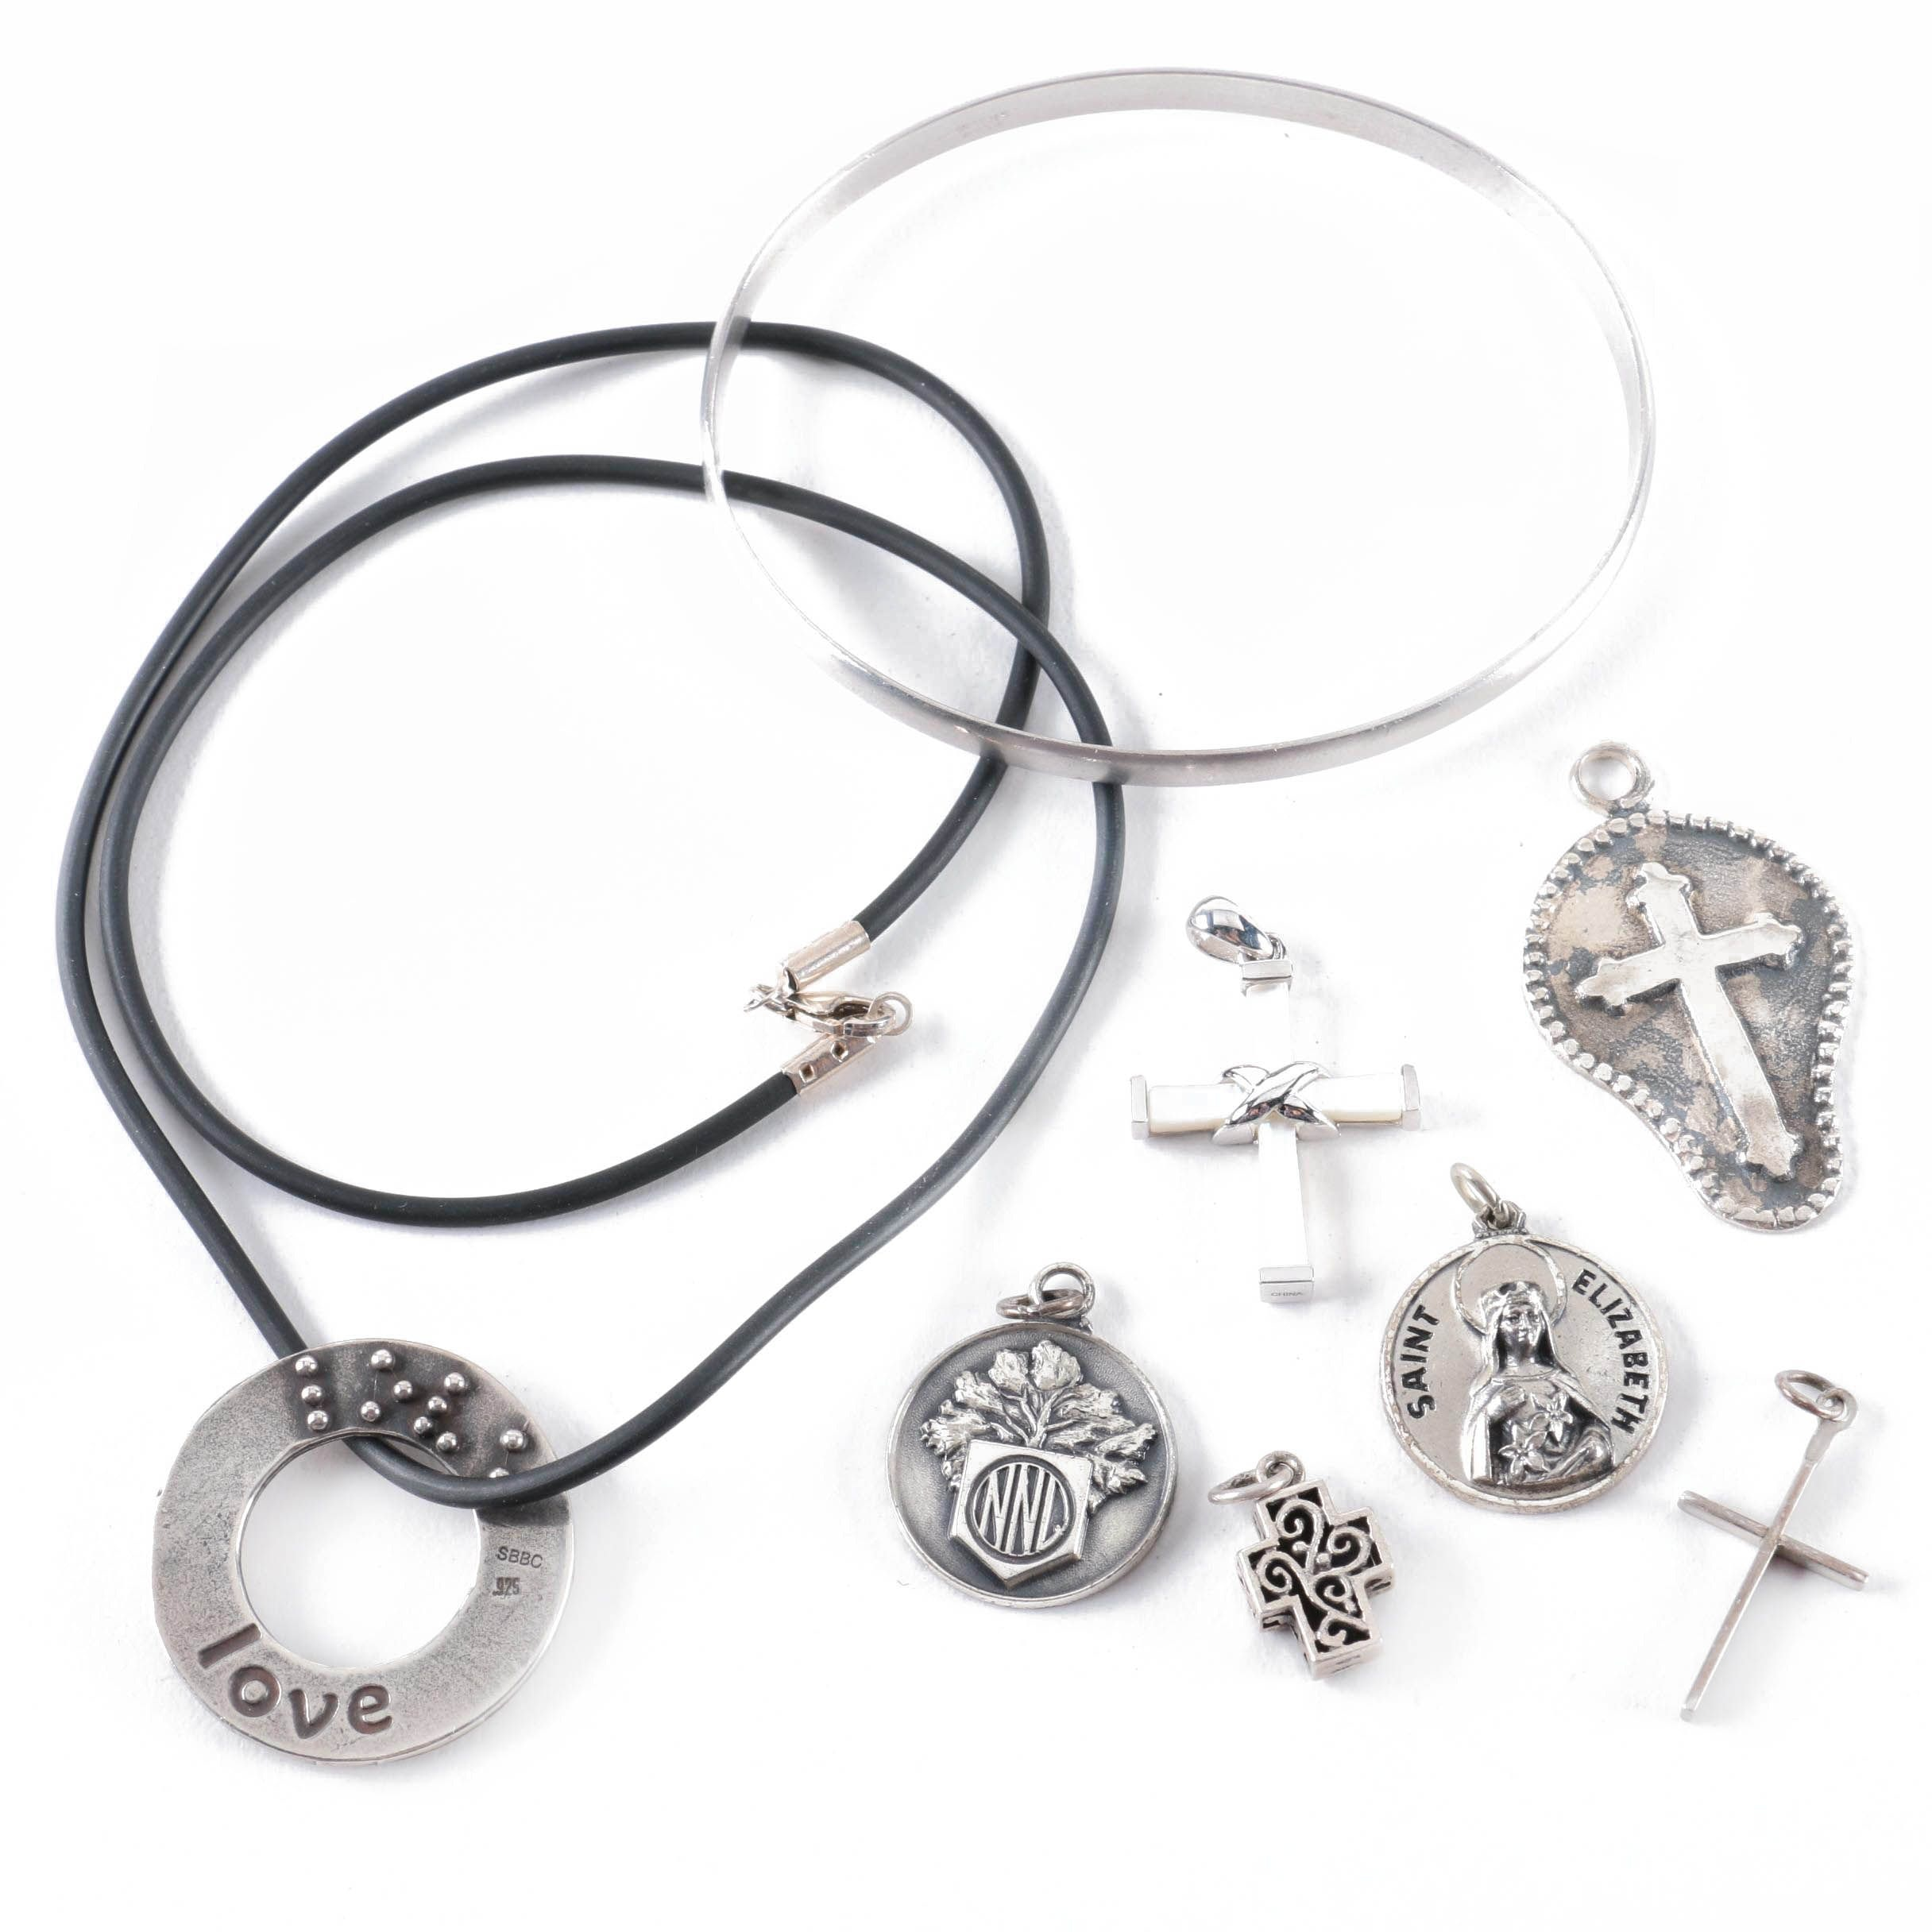 Sterling Silver Necklaces, Bracelets and Religious Pendants